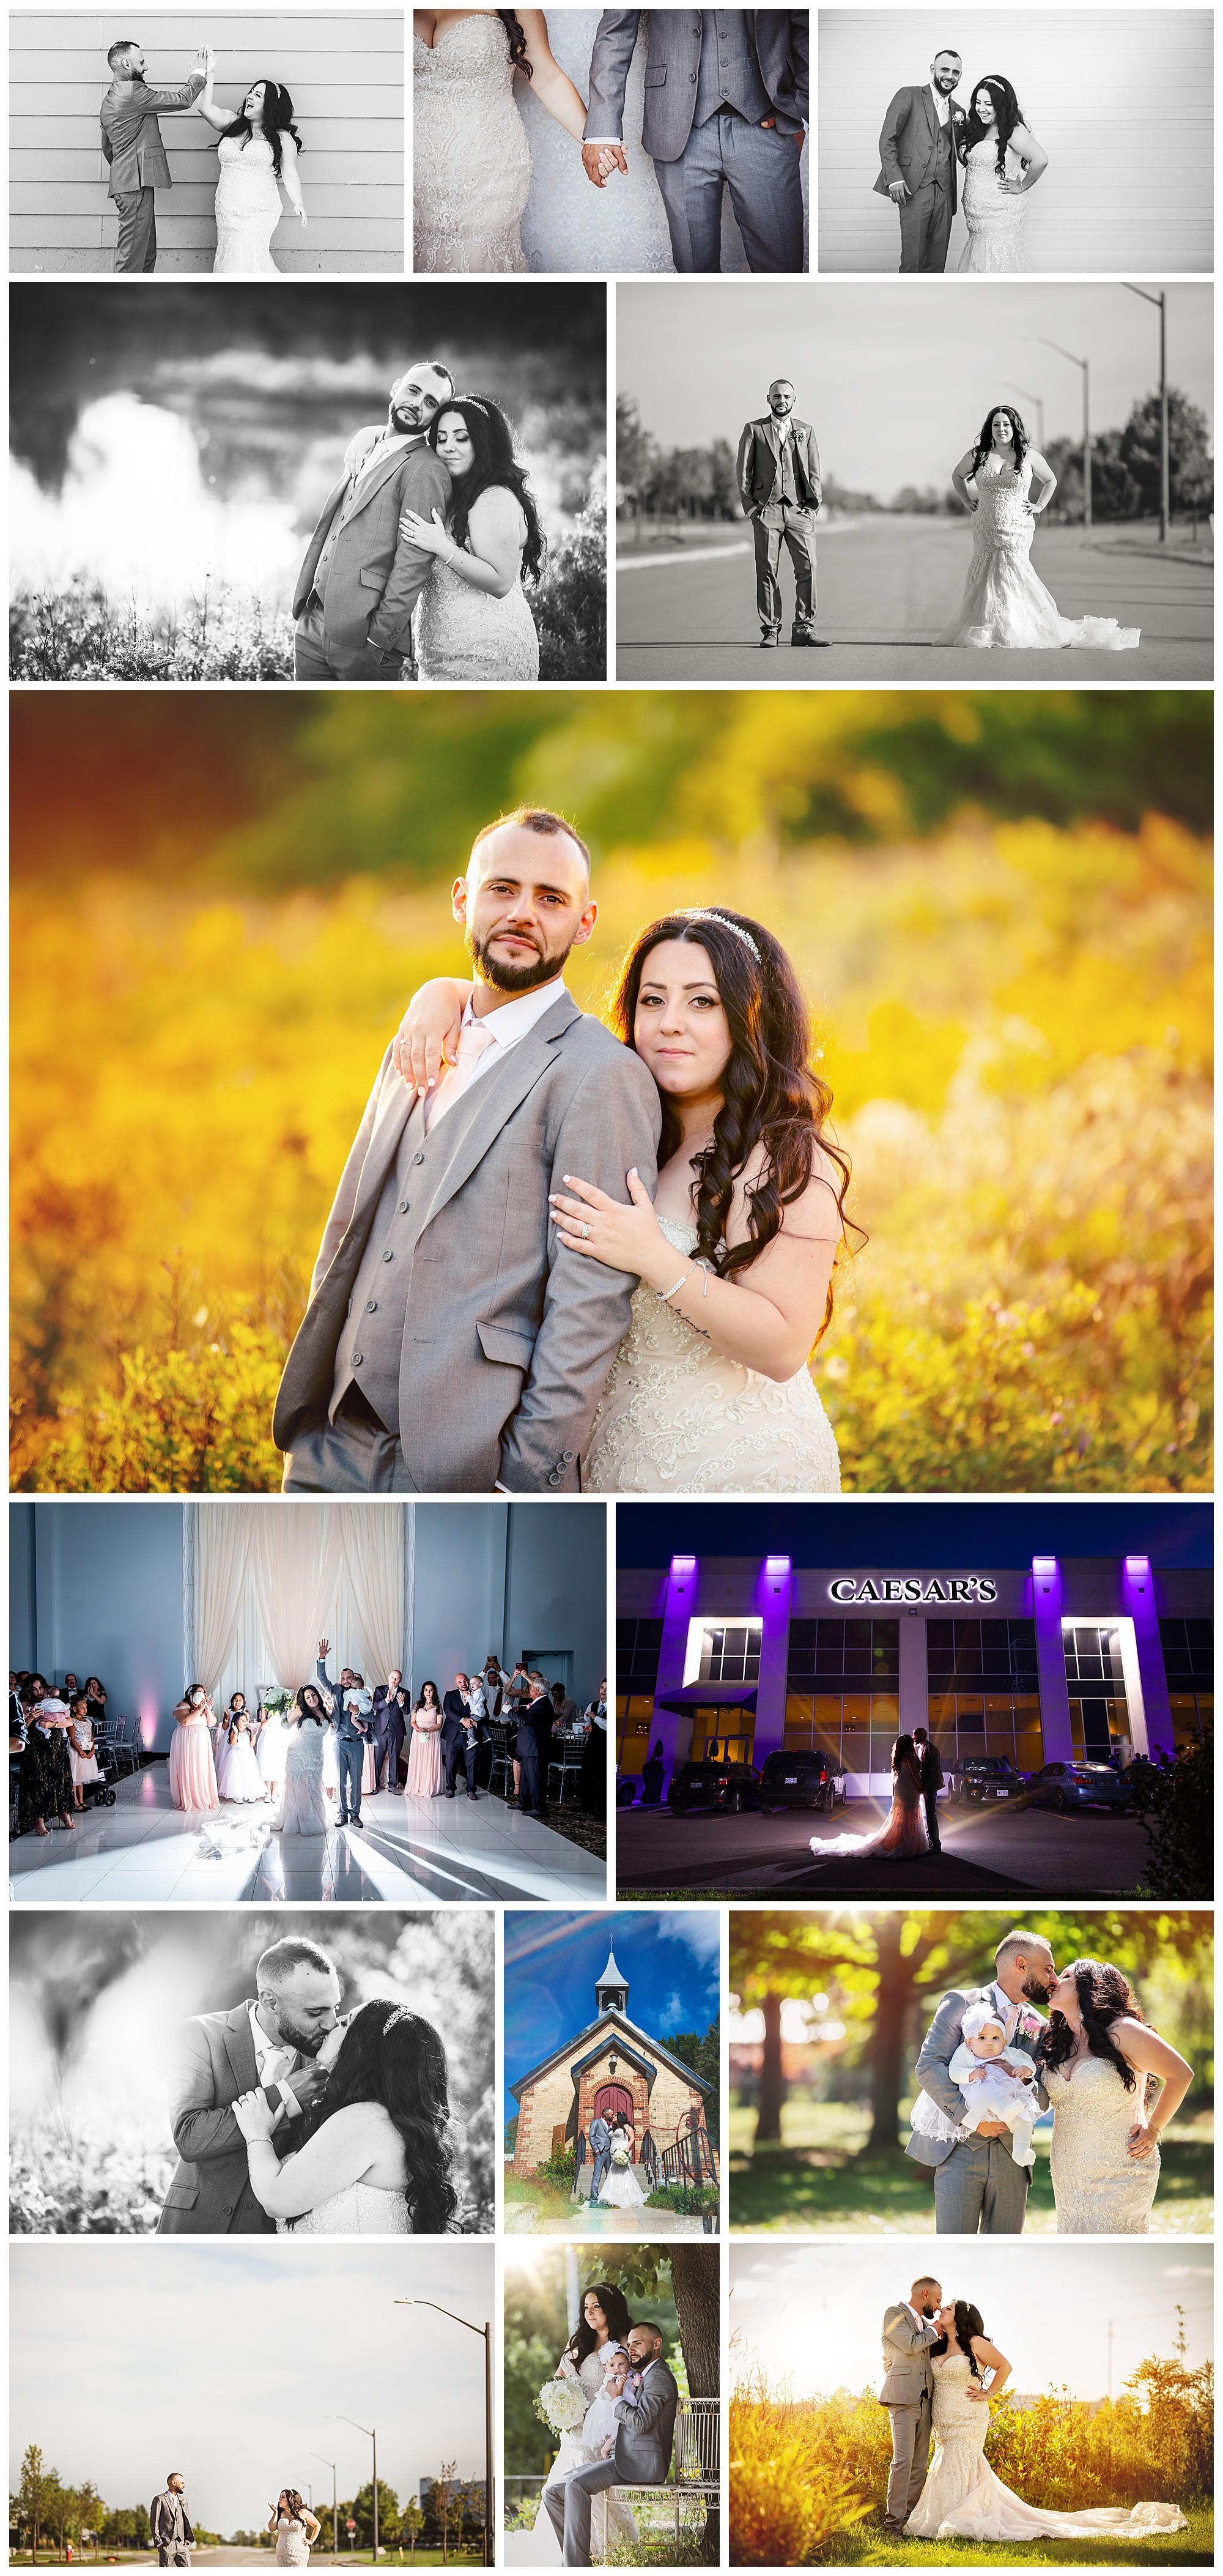 Caesar's Event Space, Bolton, Ontario wedding photography by VanDaele & Russell